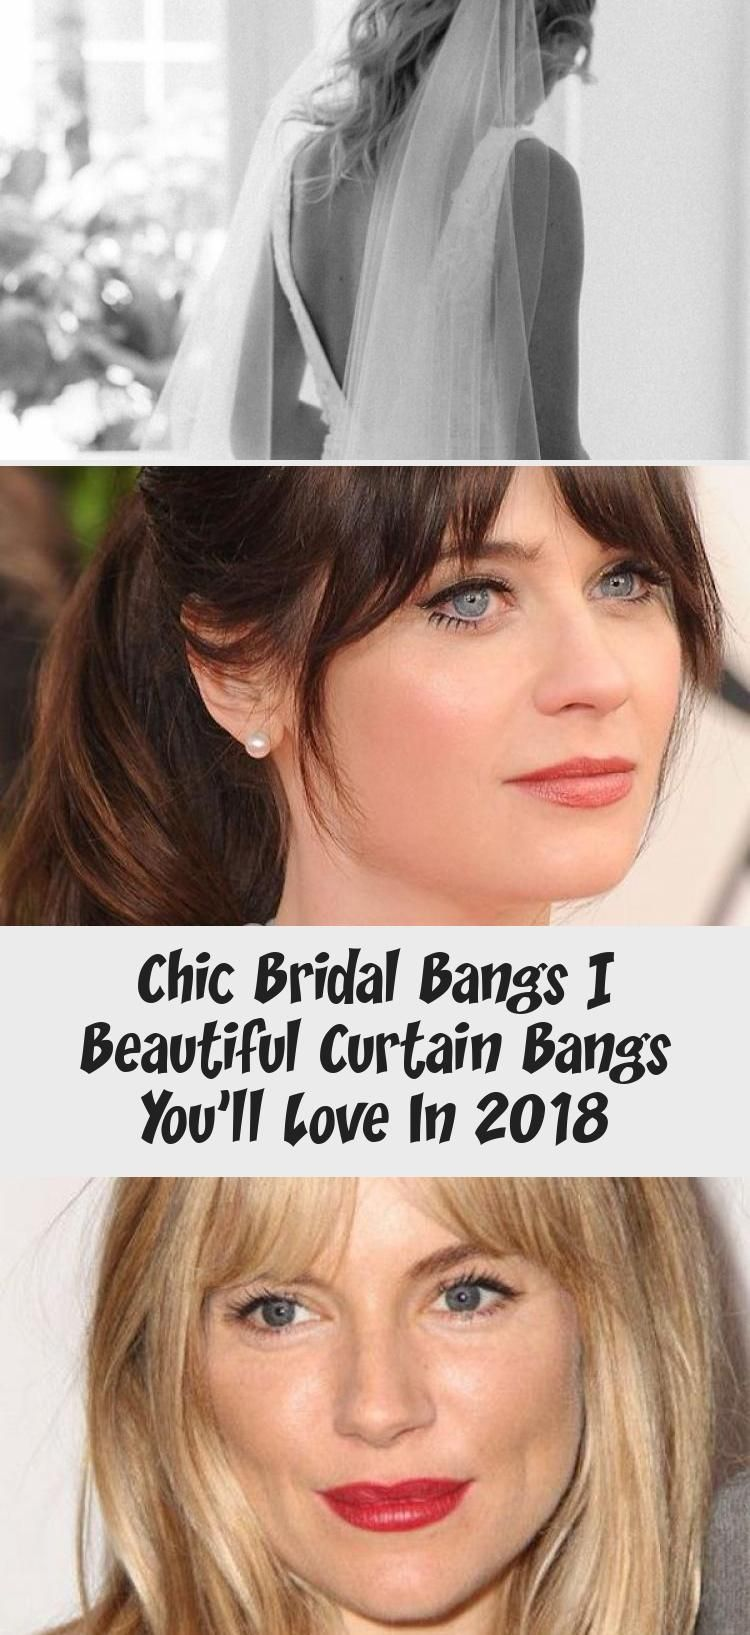 Chic Bridal Bangs | Beautiful Curtain Bangs You'll Love In 2018 #curtainbangs BRIDAL BANGS_loose waves with curtain bangs 12 #HowToMakewavyhair #wavyhairPonytail #wavyhairLayers #wavyhairKorean #Messywavyhair #curtainbangs